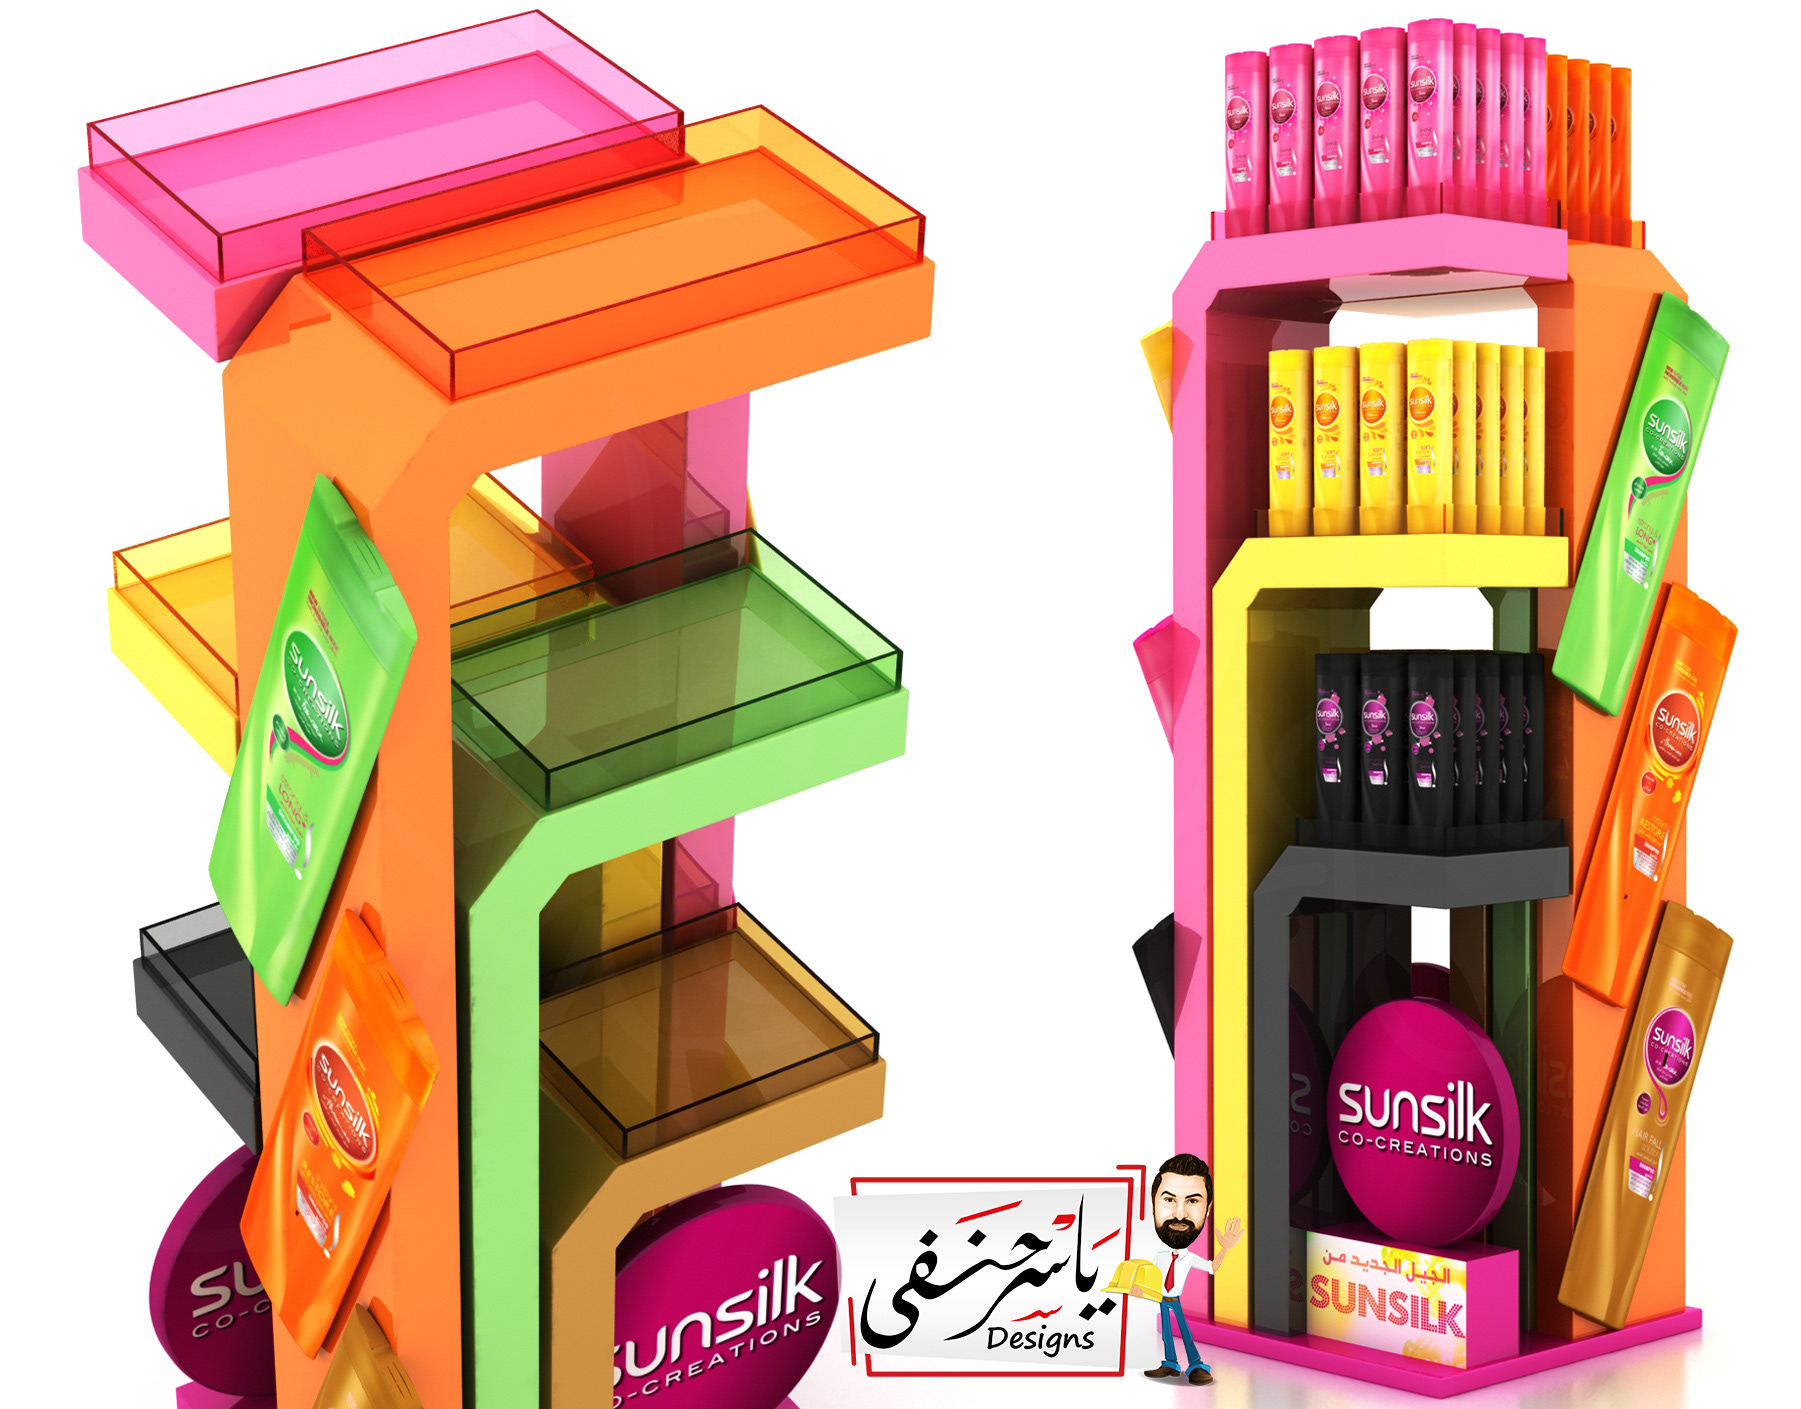 Campaign Sunsilk Projects Photos Videos Logos Illustrations And Branding On Behance